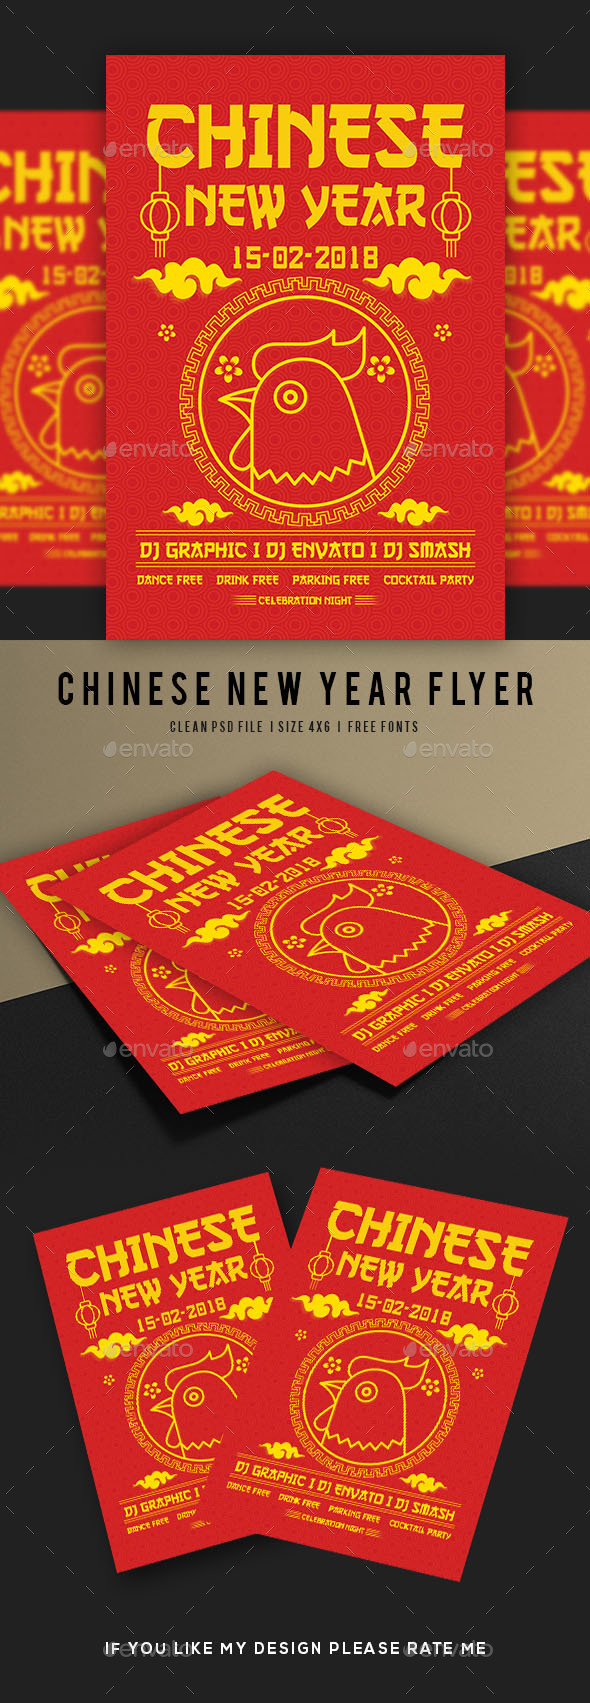 Chinese New Year Flyer - Flyers Print Templates